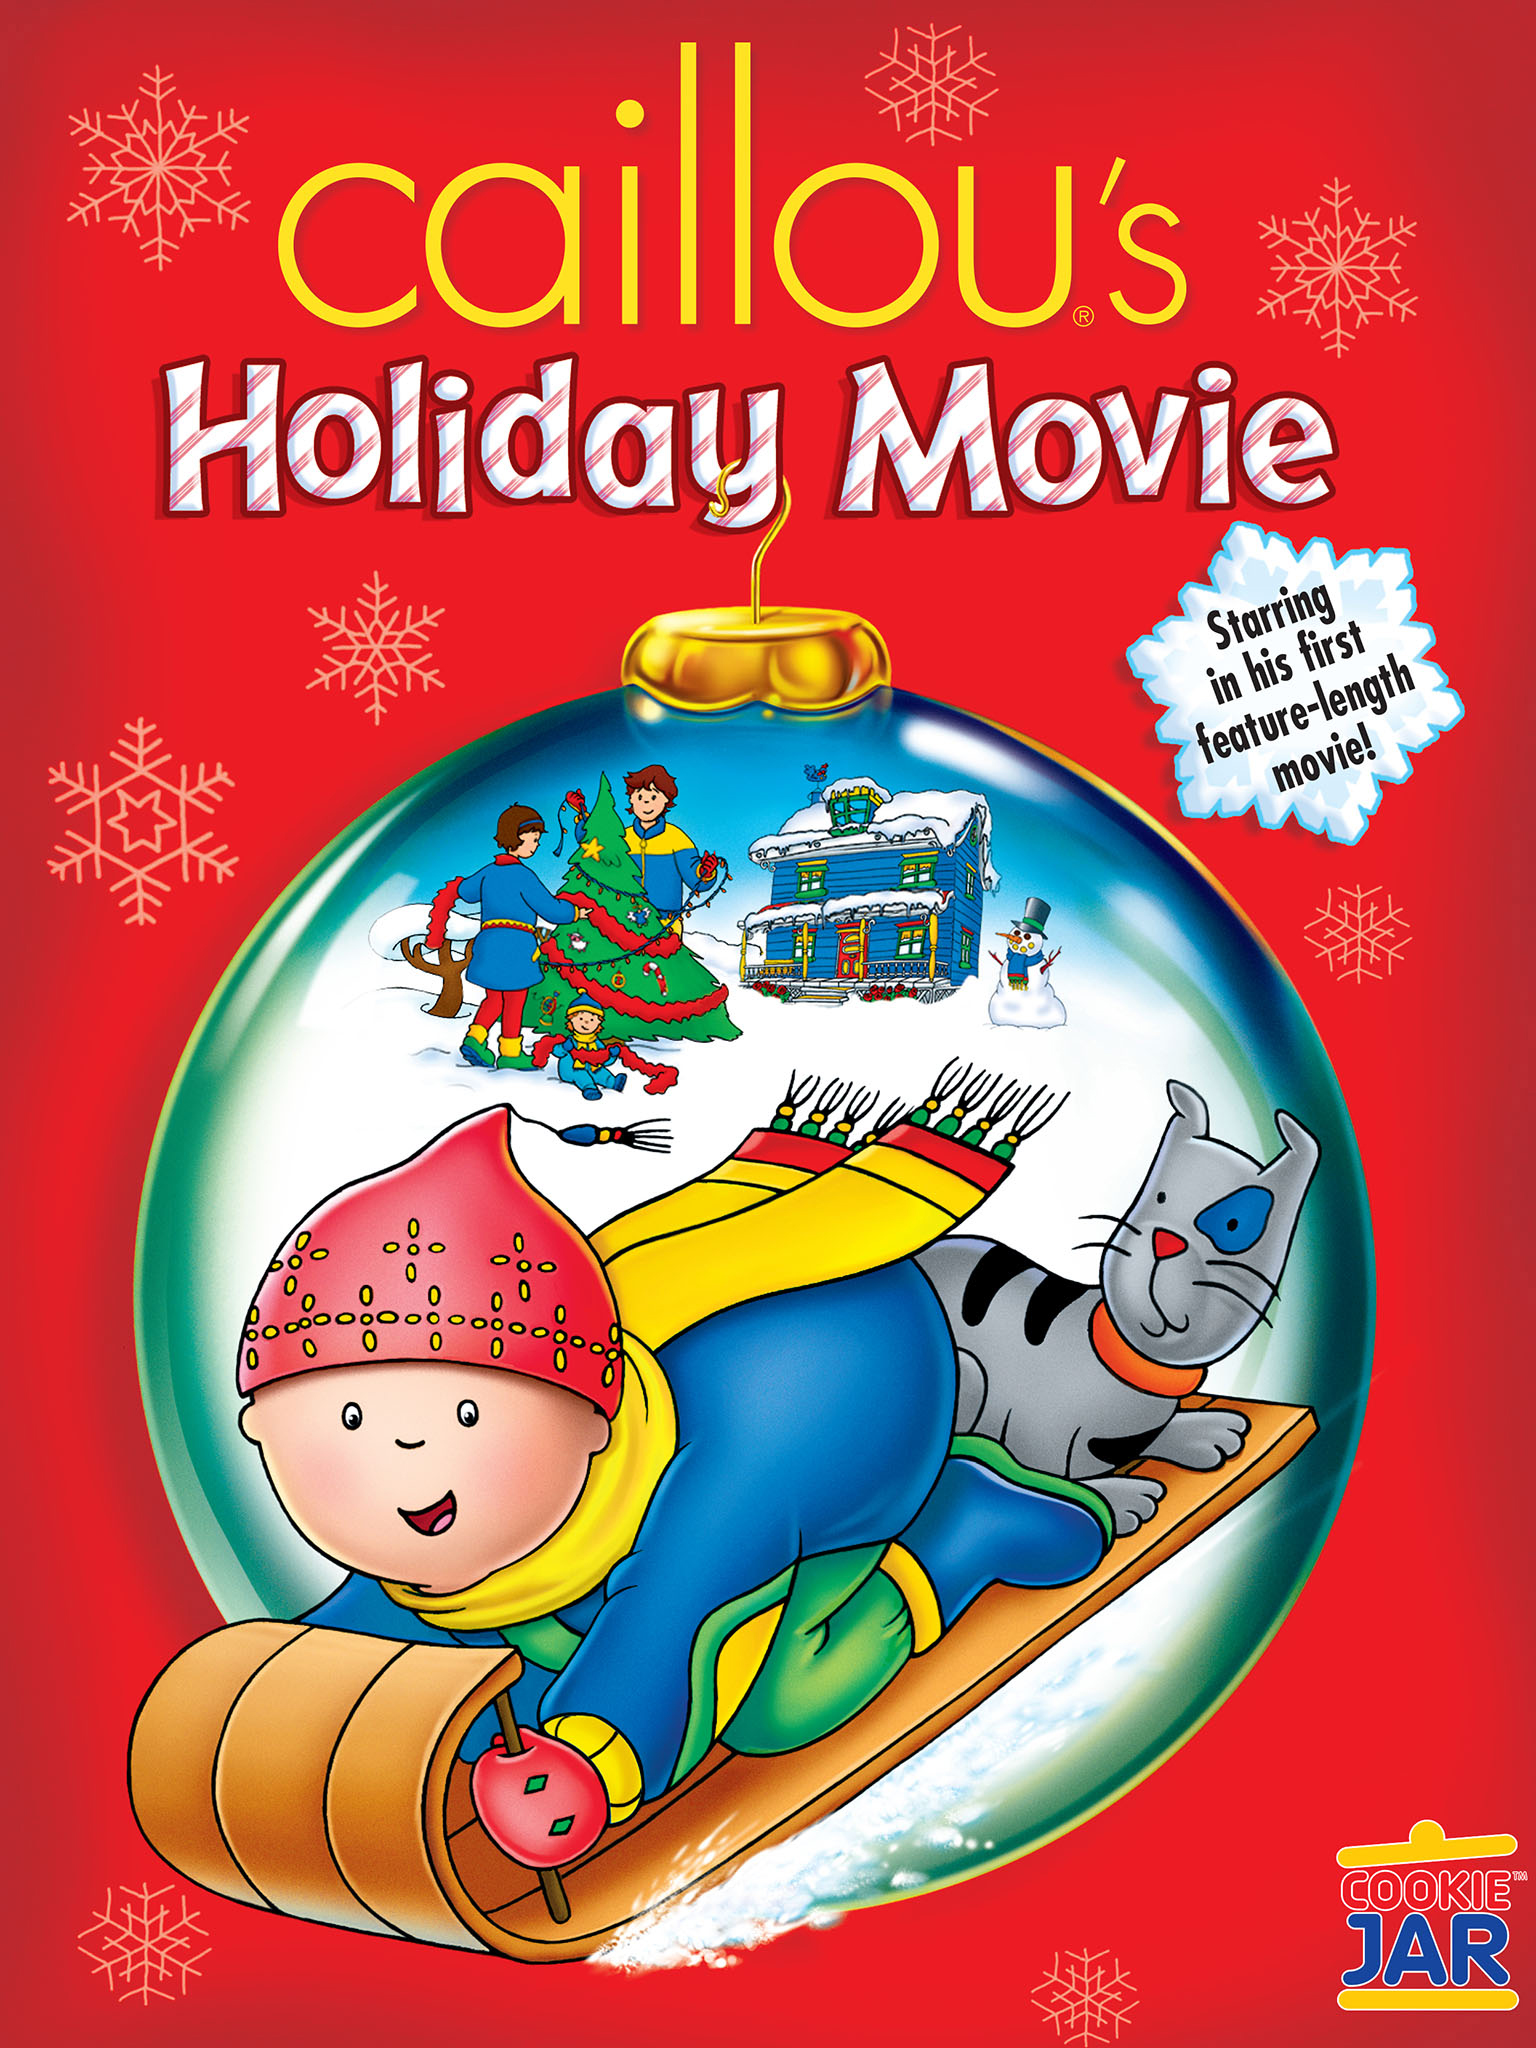 Caillou's Holiday Movie (2003)